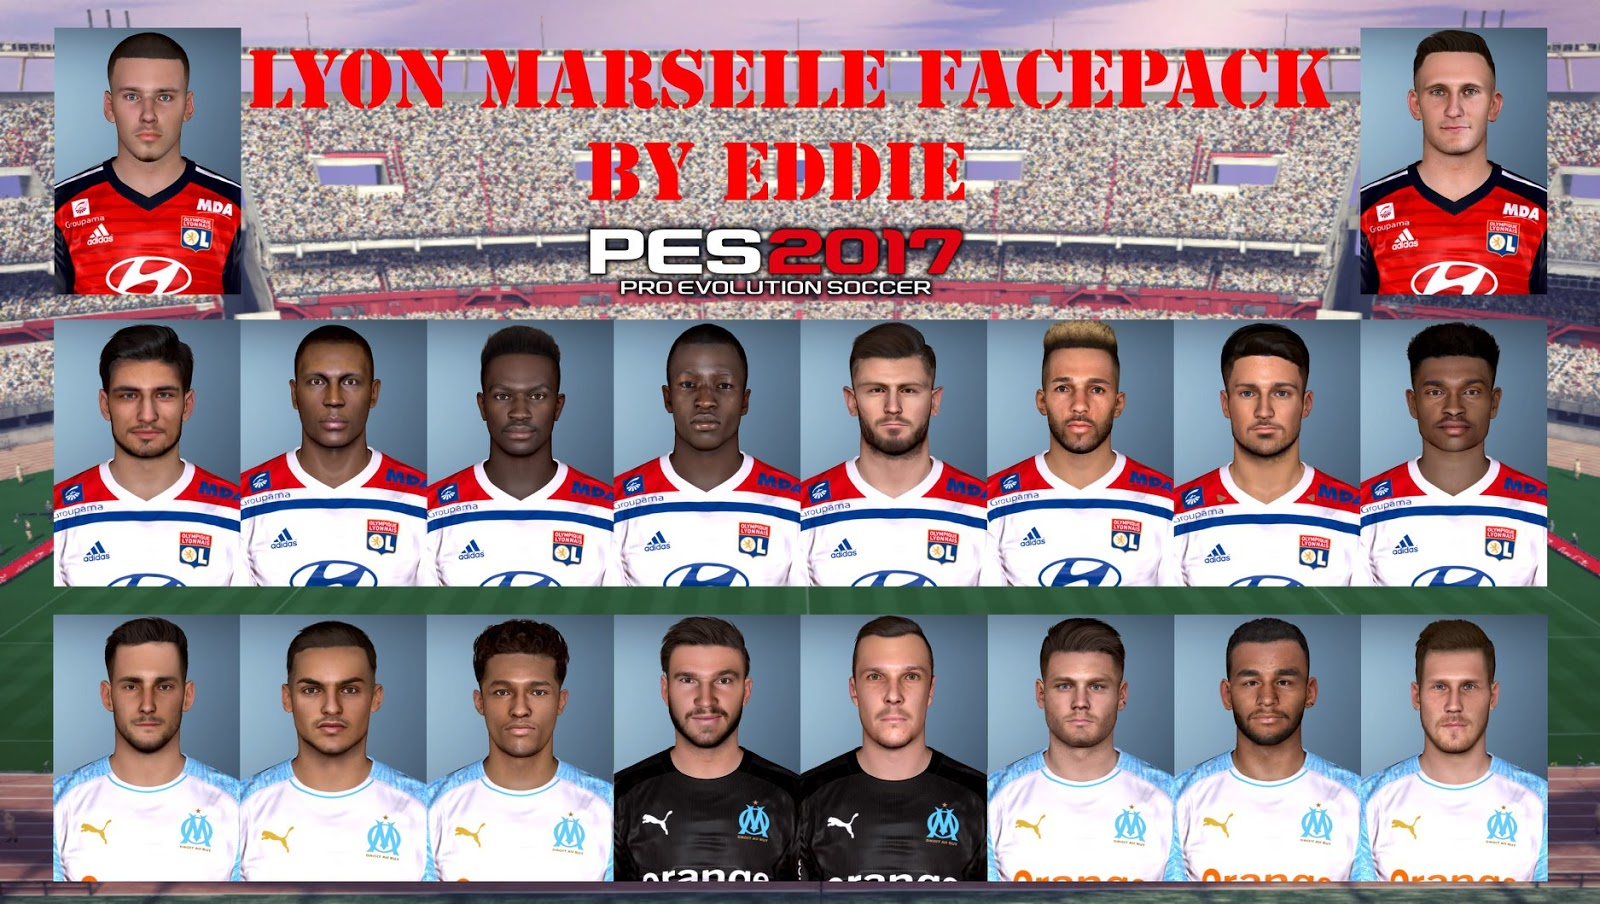 PES 2017 LYON & MARSEILE FACEPACK by Eddie Facemakers